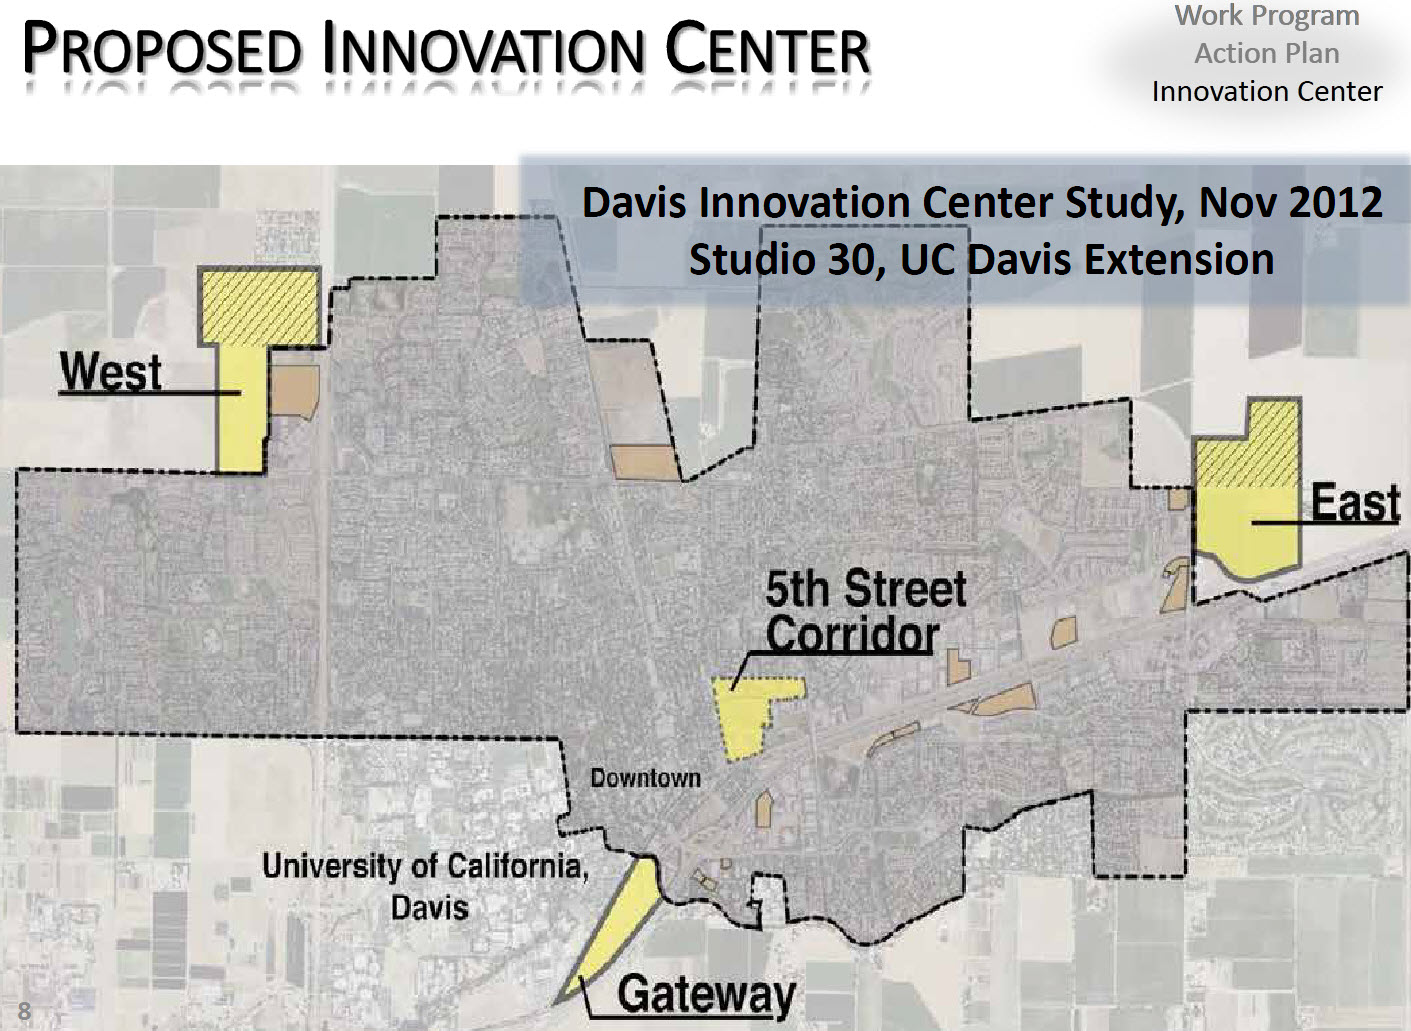 What Should the Davis Innovation Ecoystem Look Like?